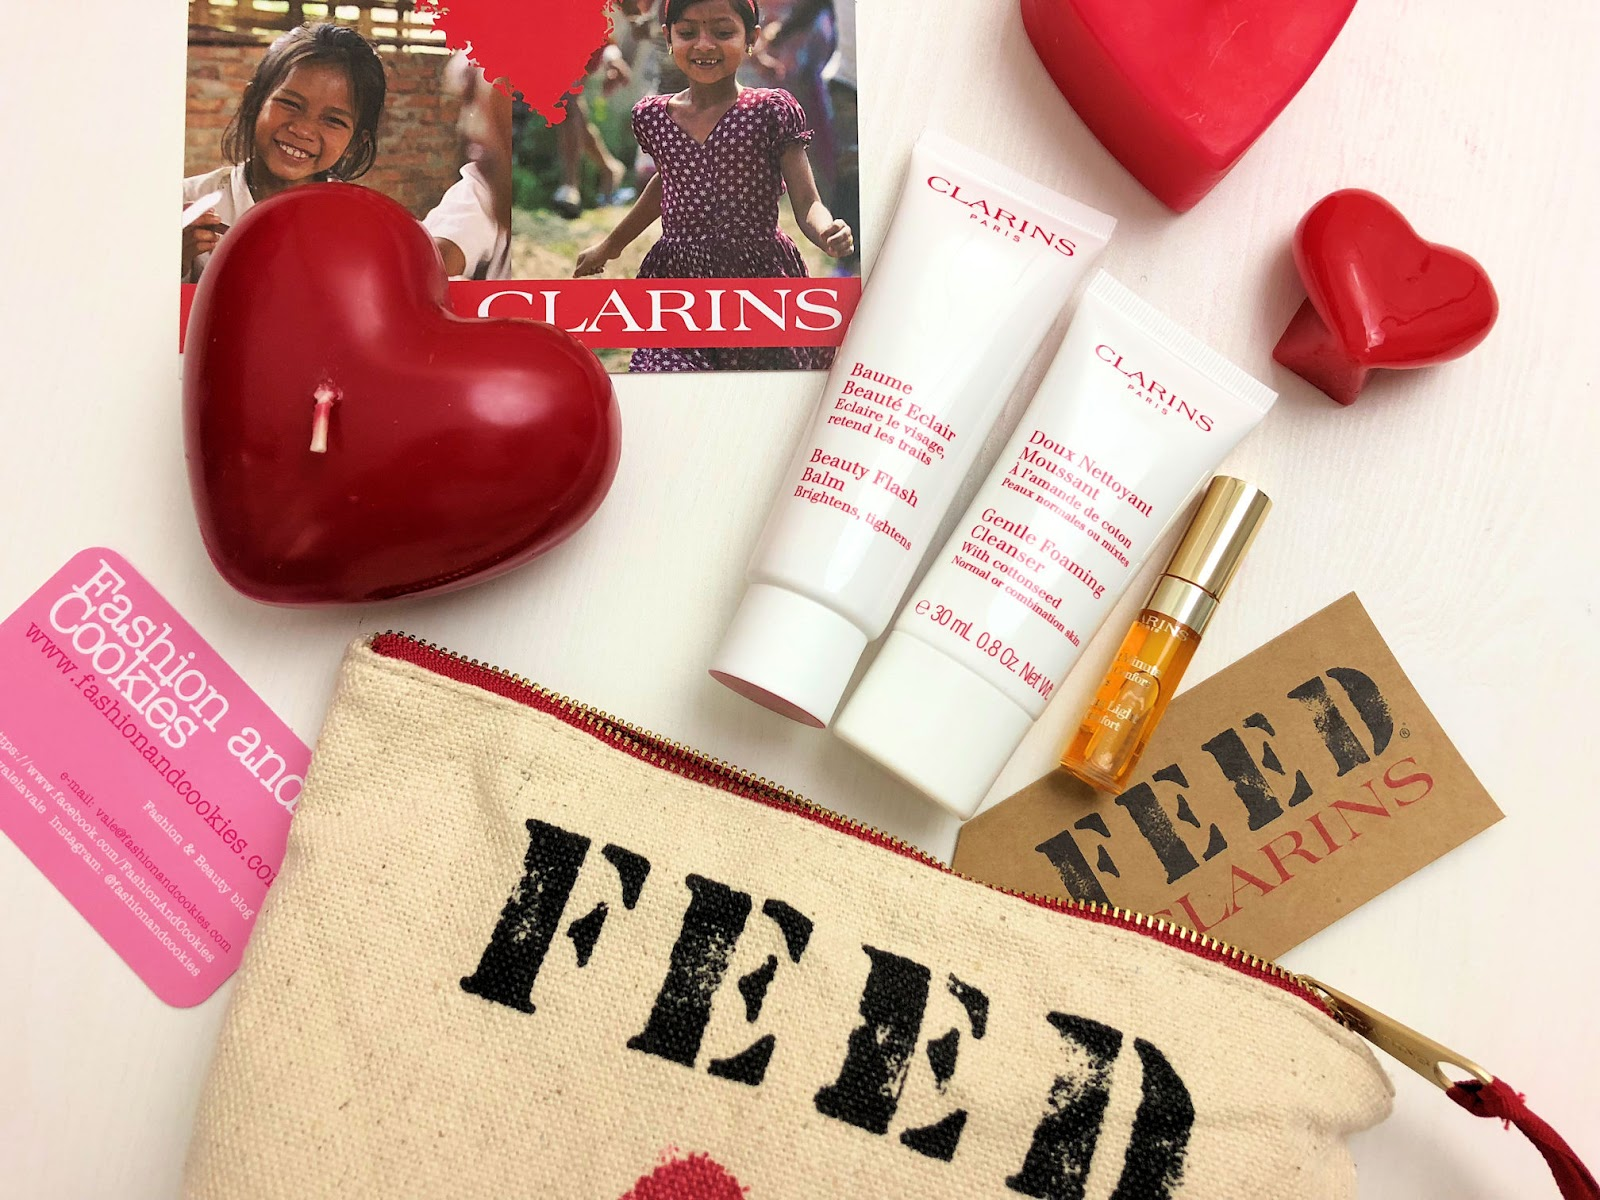 Trousse Clarins FEED10 per il 2018 in edizione limitata su Fashion and Cookies fashion blog, fashion blogger